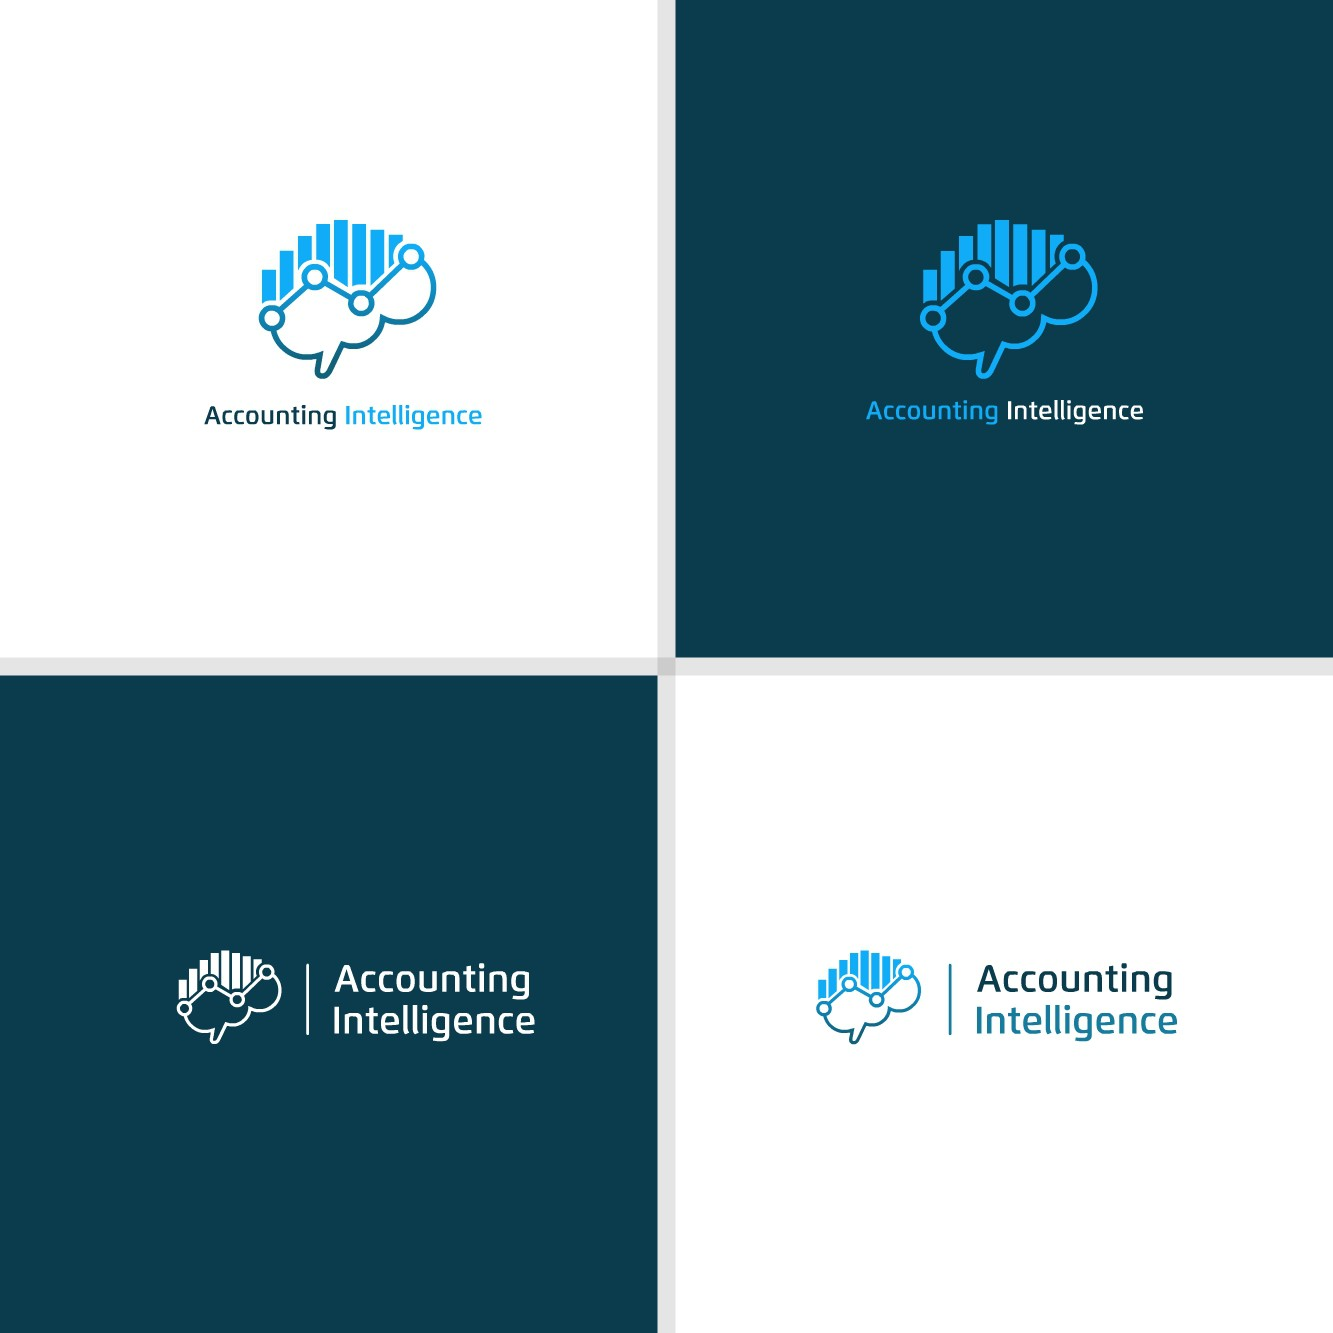 Icon for cutting-edge Artificial Intelligence app